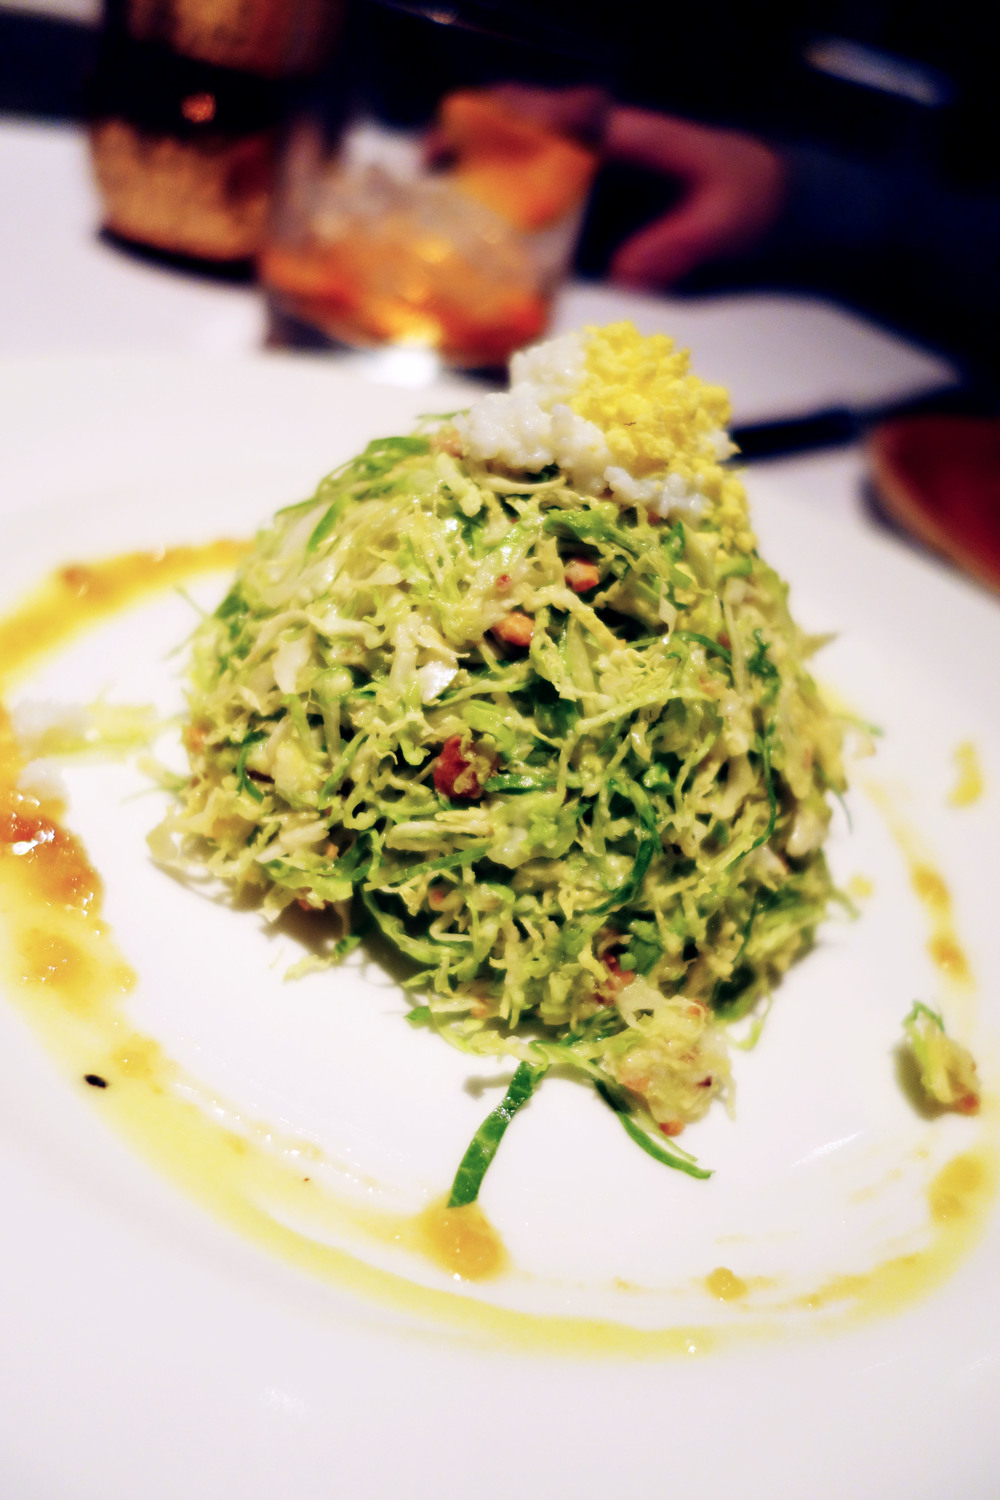 Bottega brussel sprout